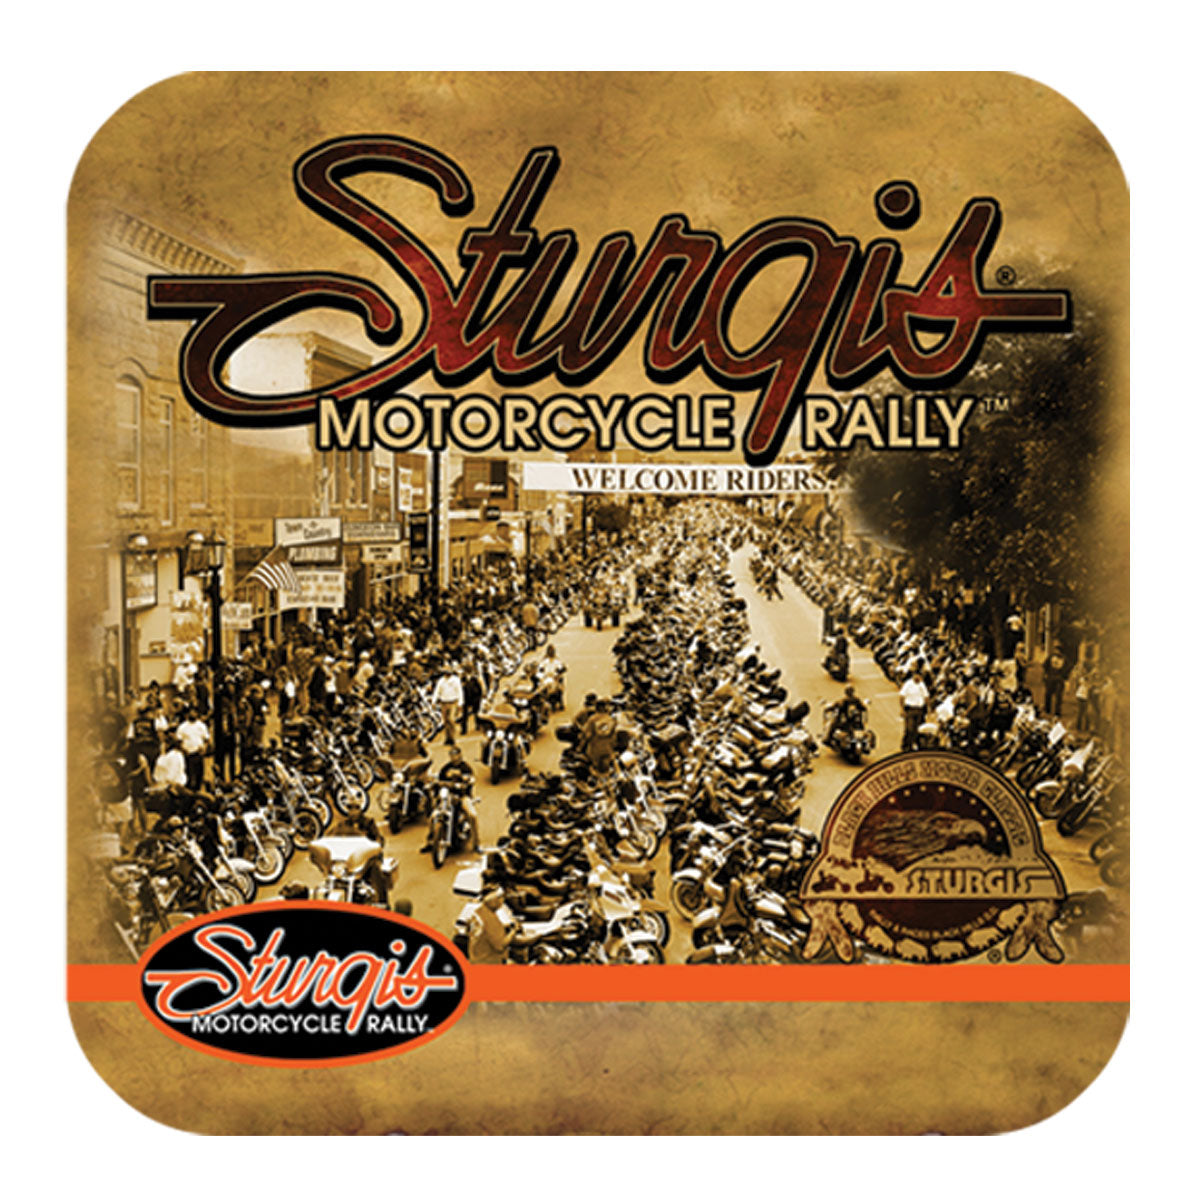 Official Sturgis Motorcycle Rally Coasters (6 Pack)